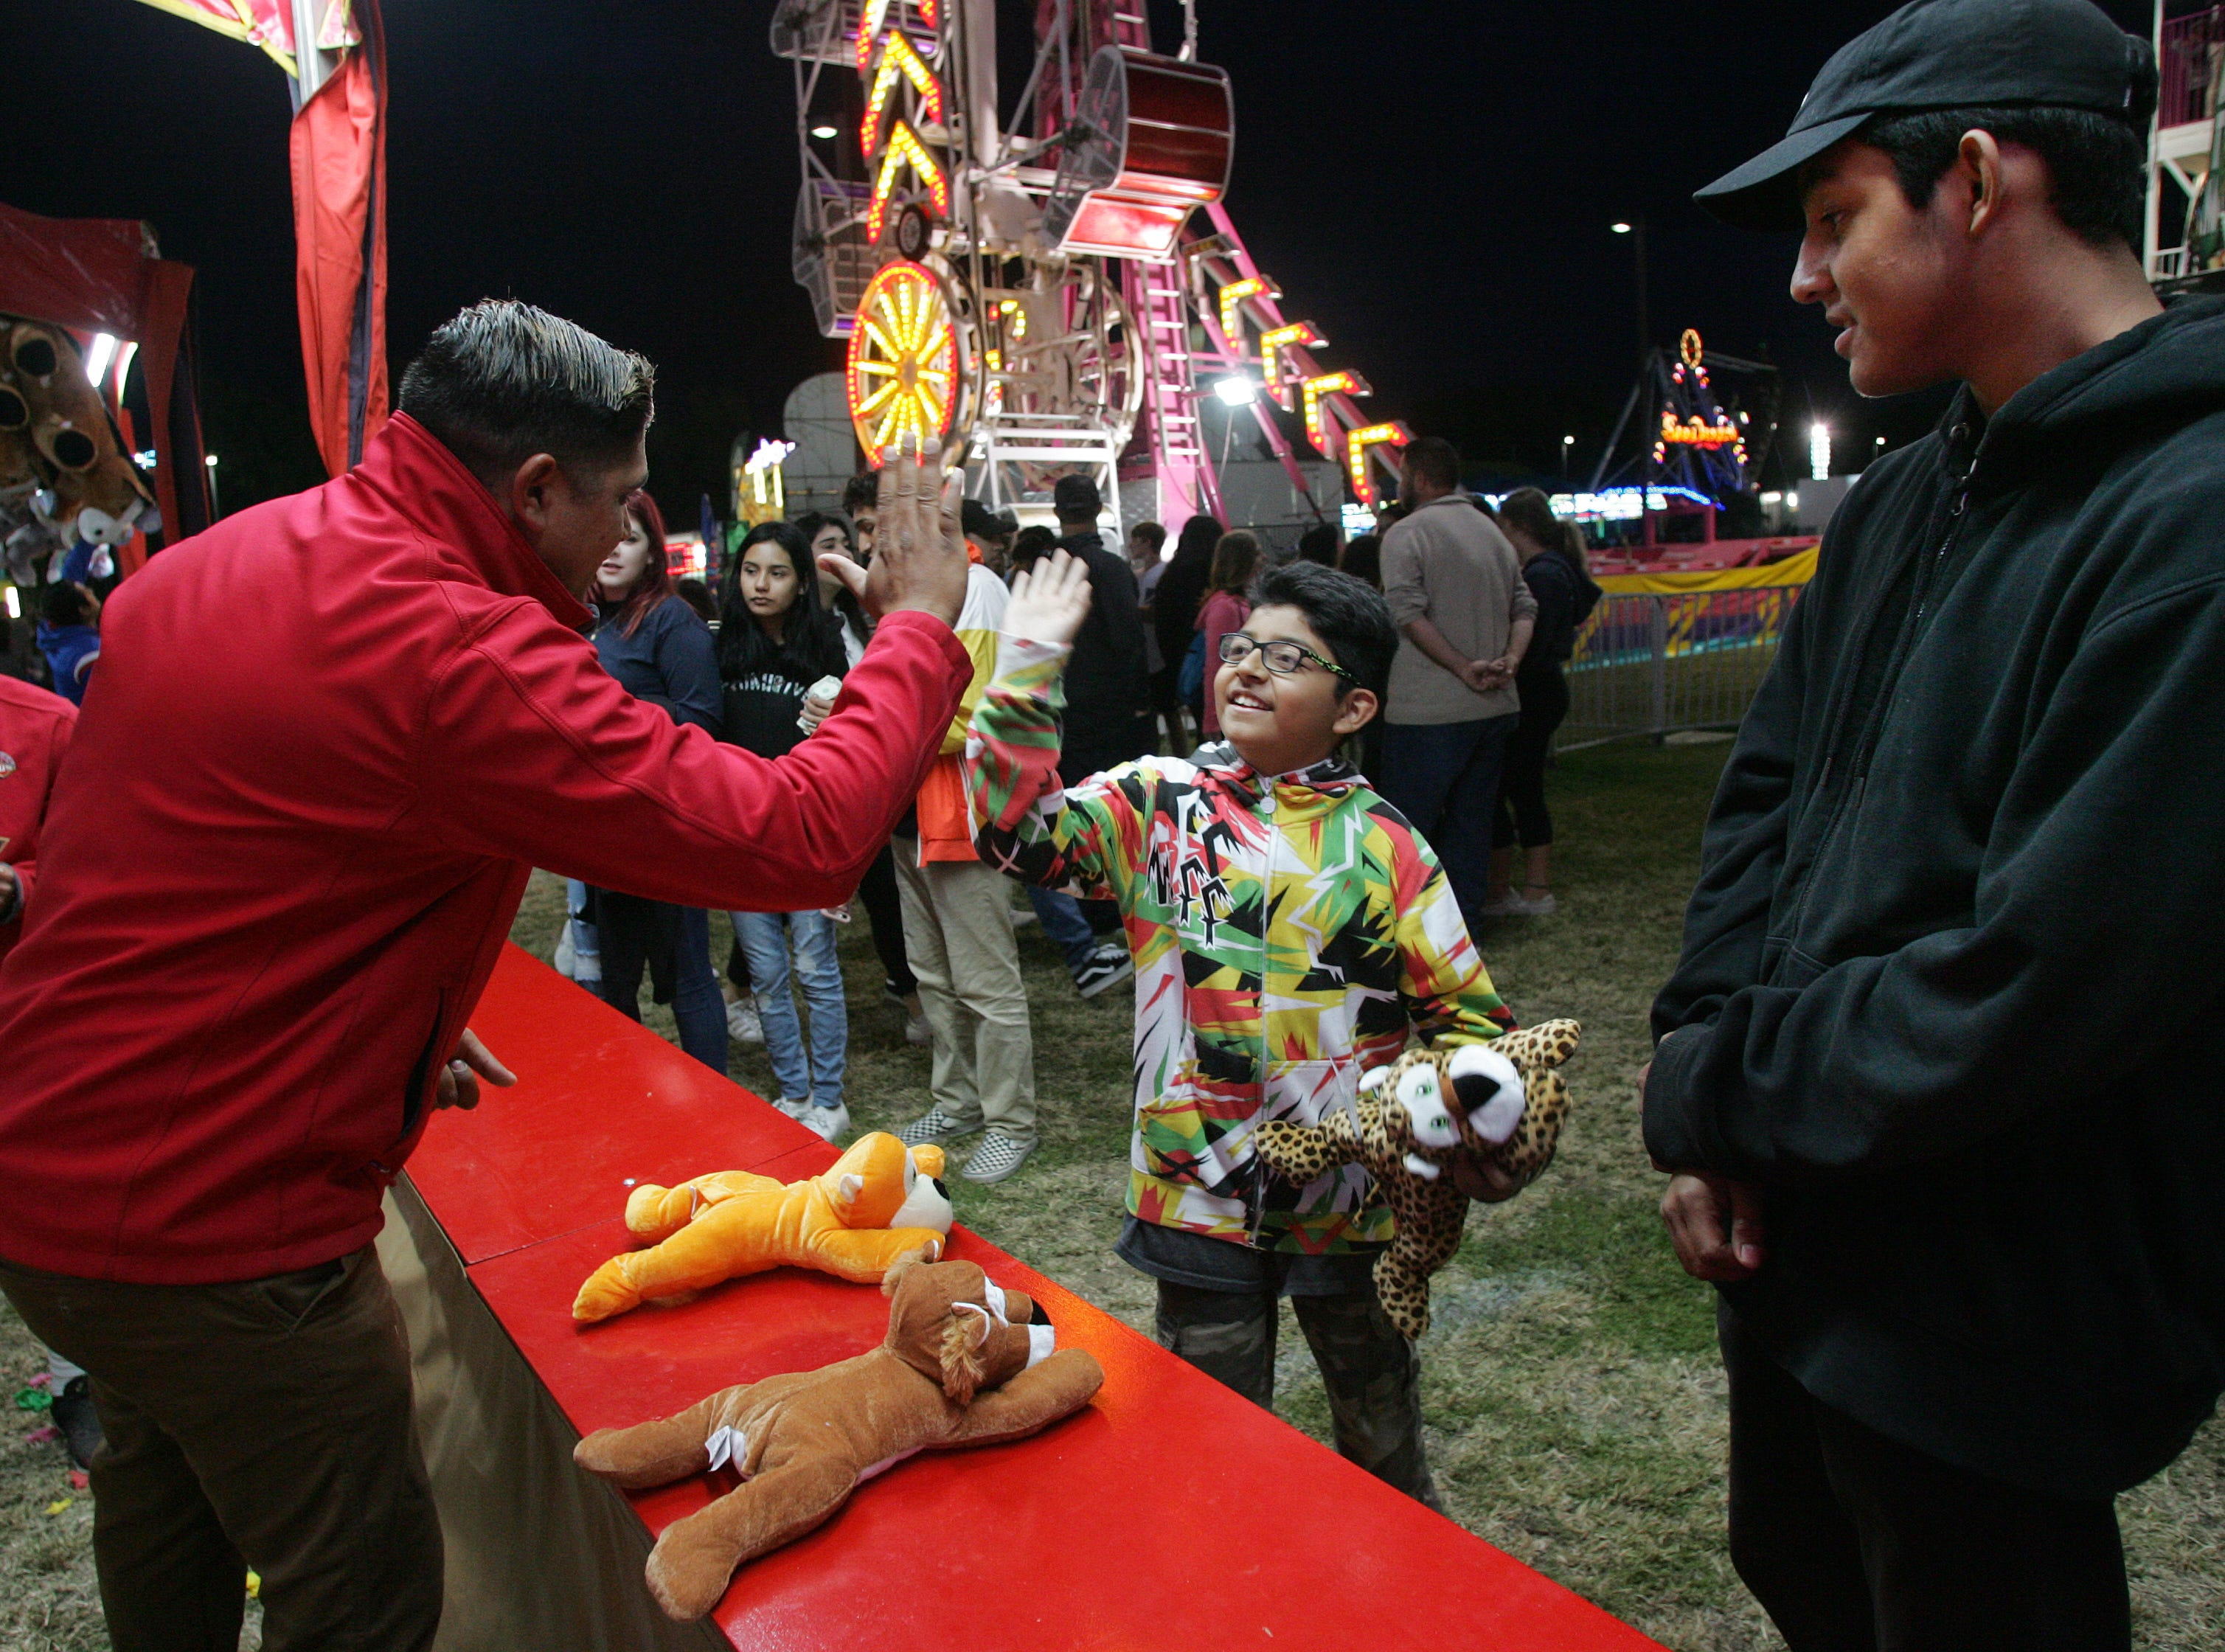 Martin Ascencio receives a high-five from vendor Dimitri Ederies as Erik Hernandez, right, watches. Ascencio won a prize at the carnival Thursday during the opening night of the four-day Conejo Valley Days festival in Thousand Oaks.